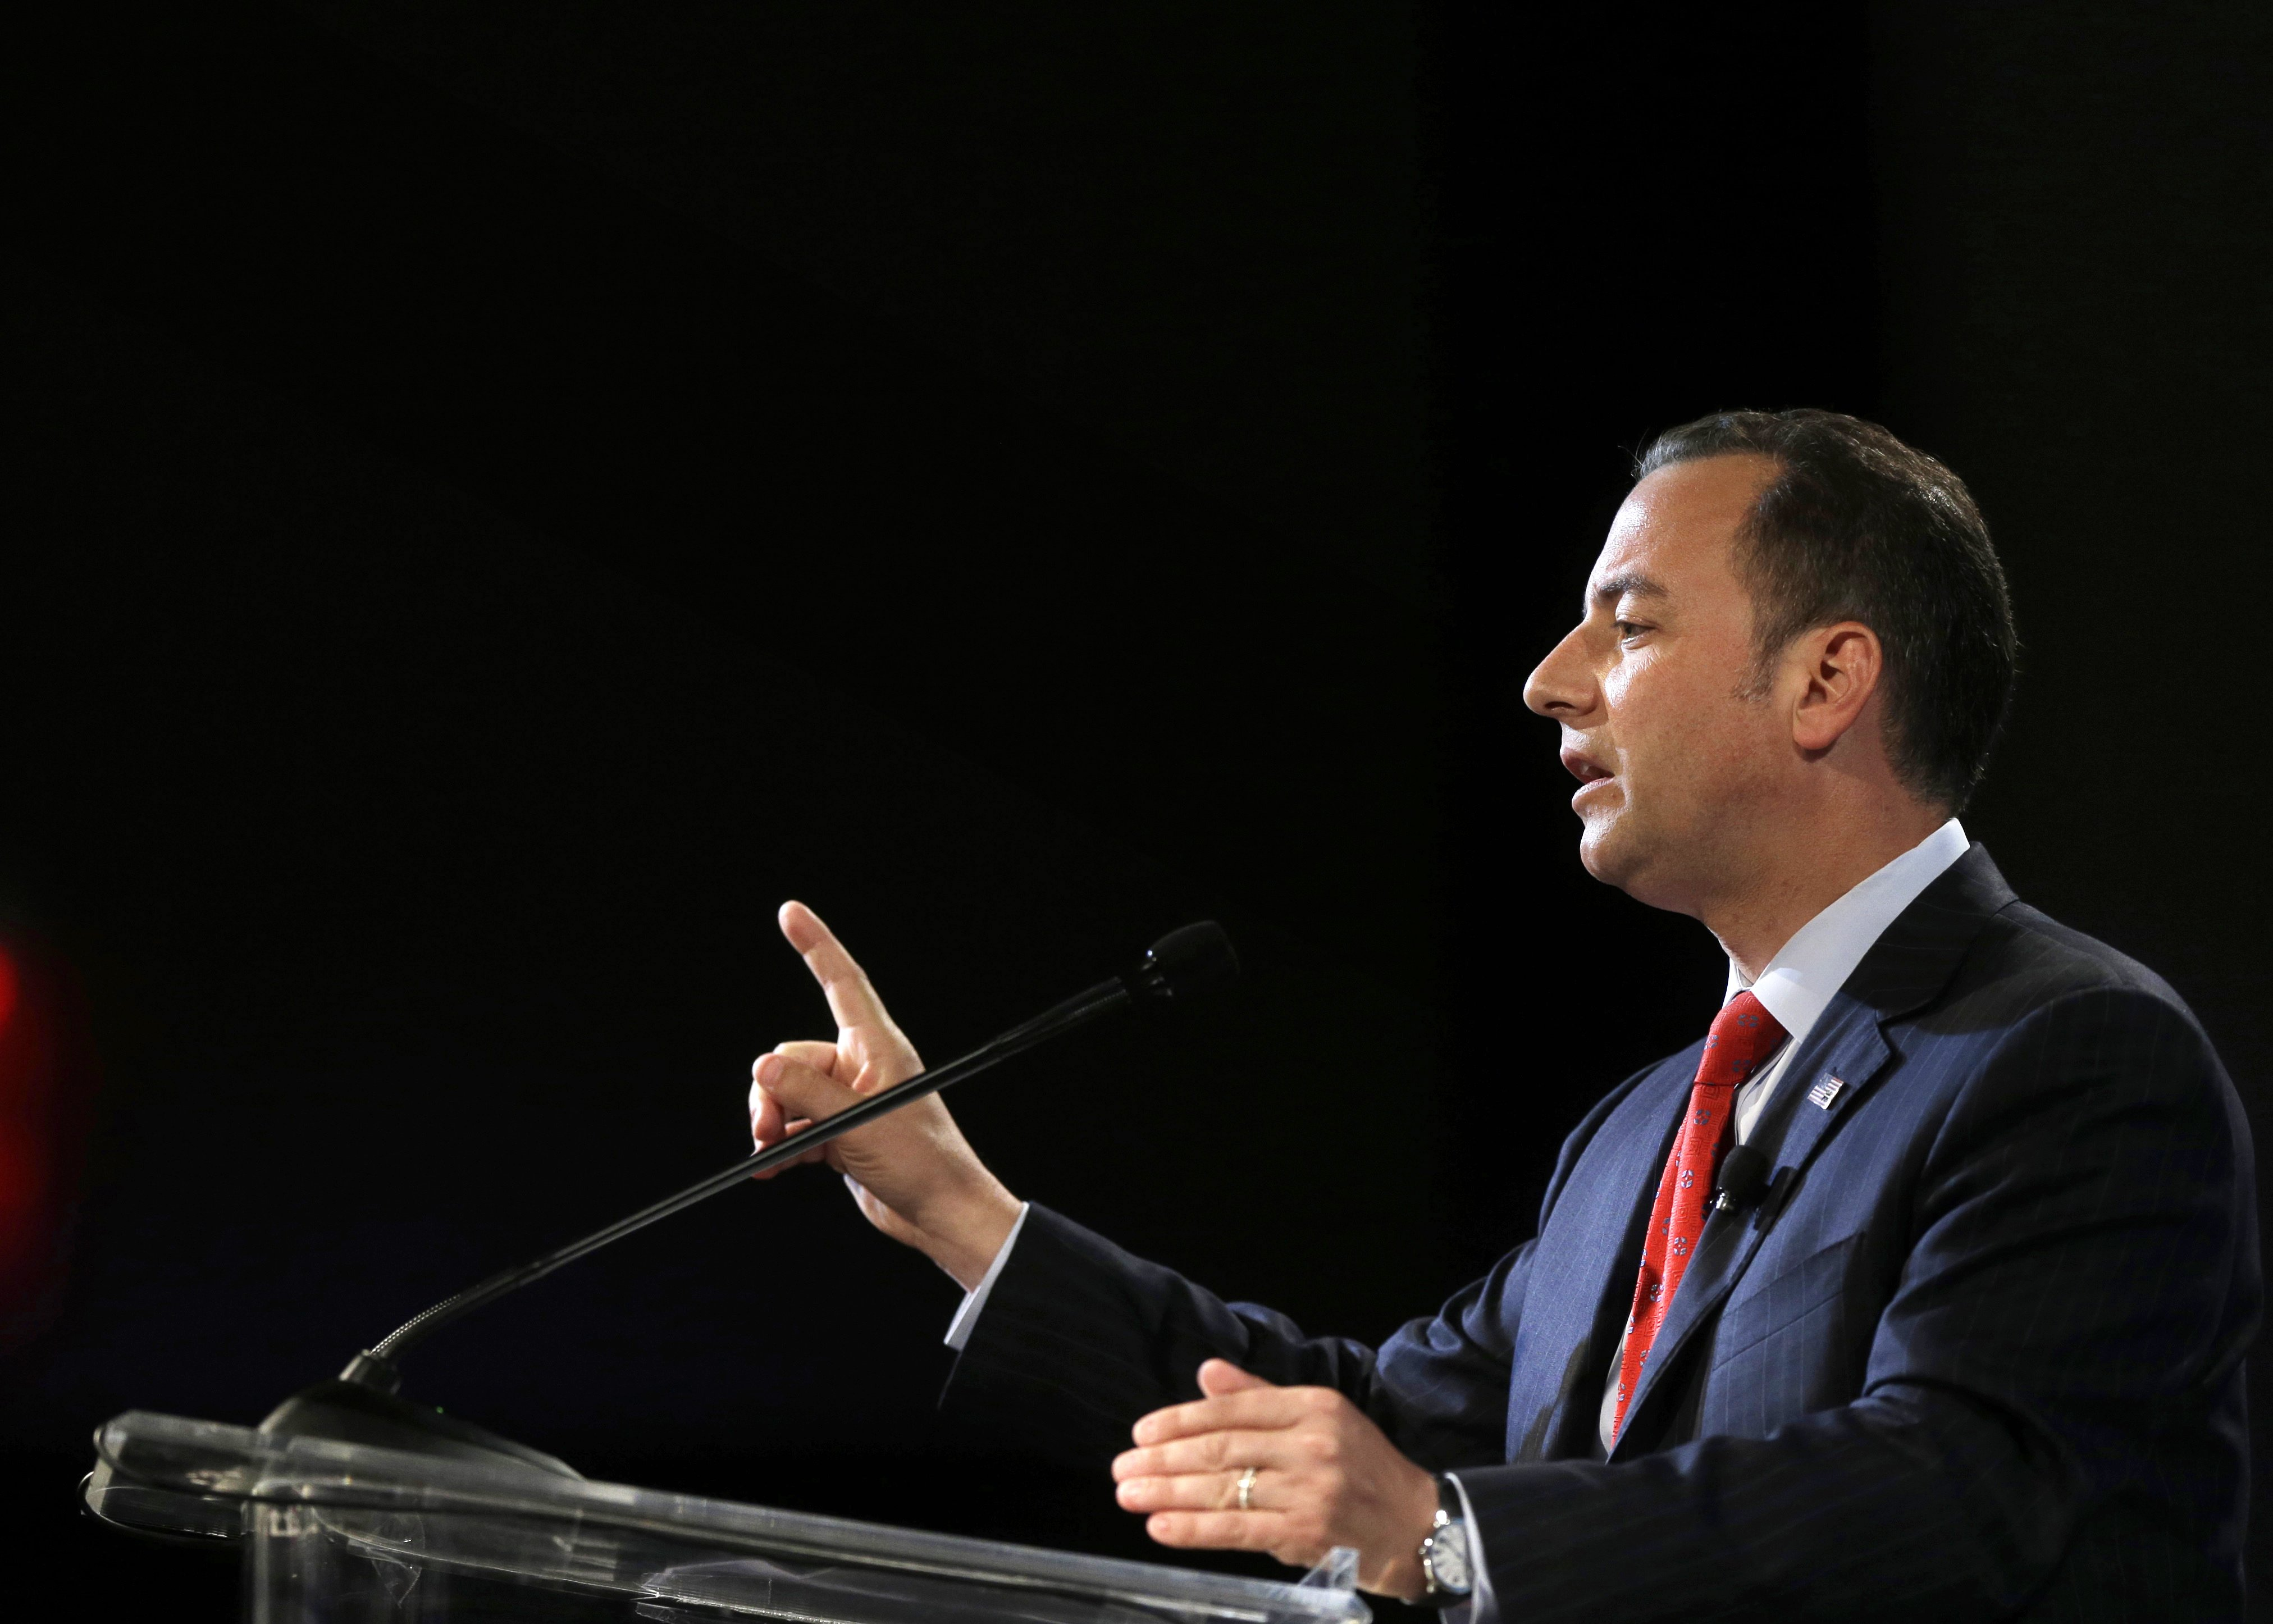 Chairman of the Republican National Committee Reince Priebus addresses an audience at the National Association of Black Journalists convention, Thursday, July 31, 2014, in Boston.